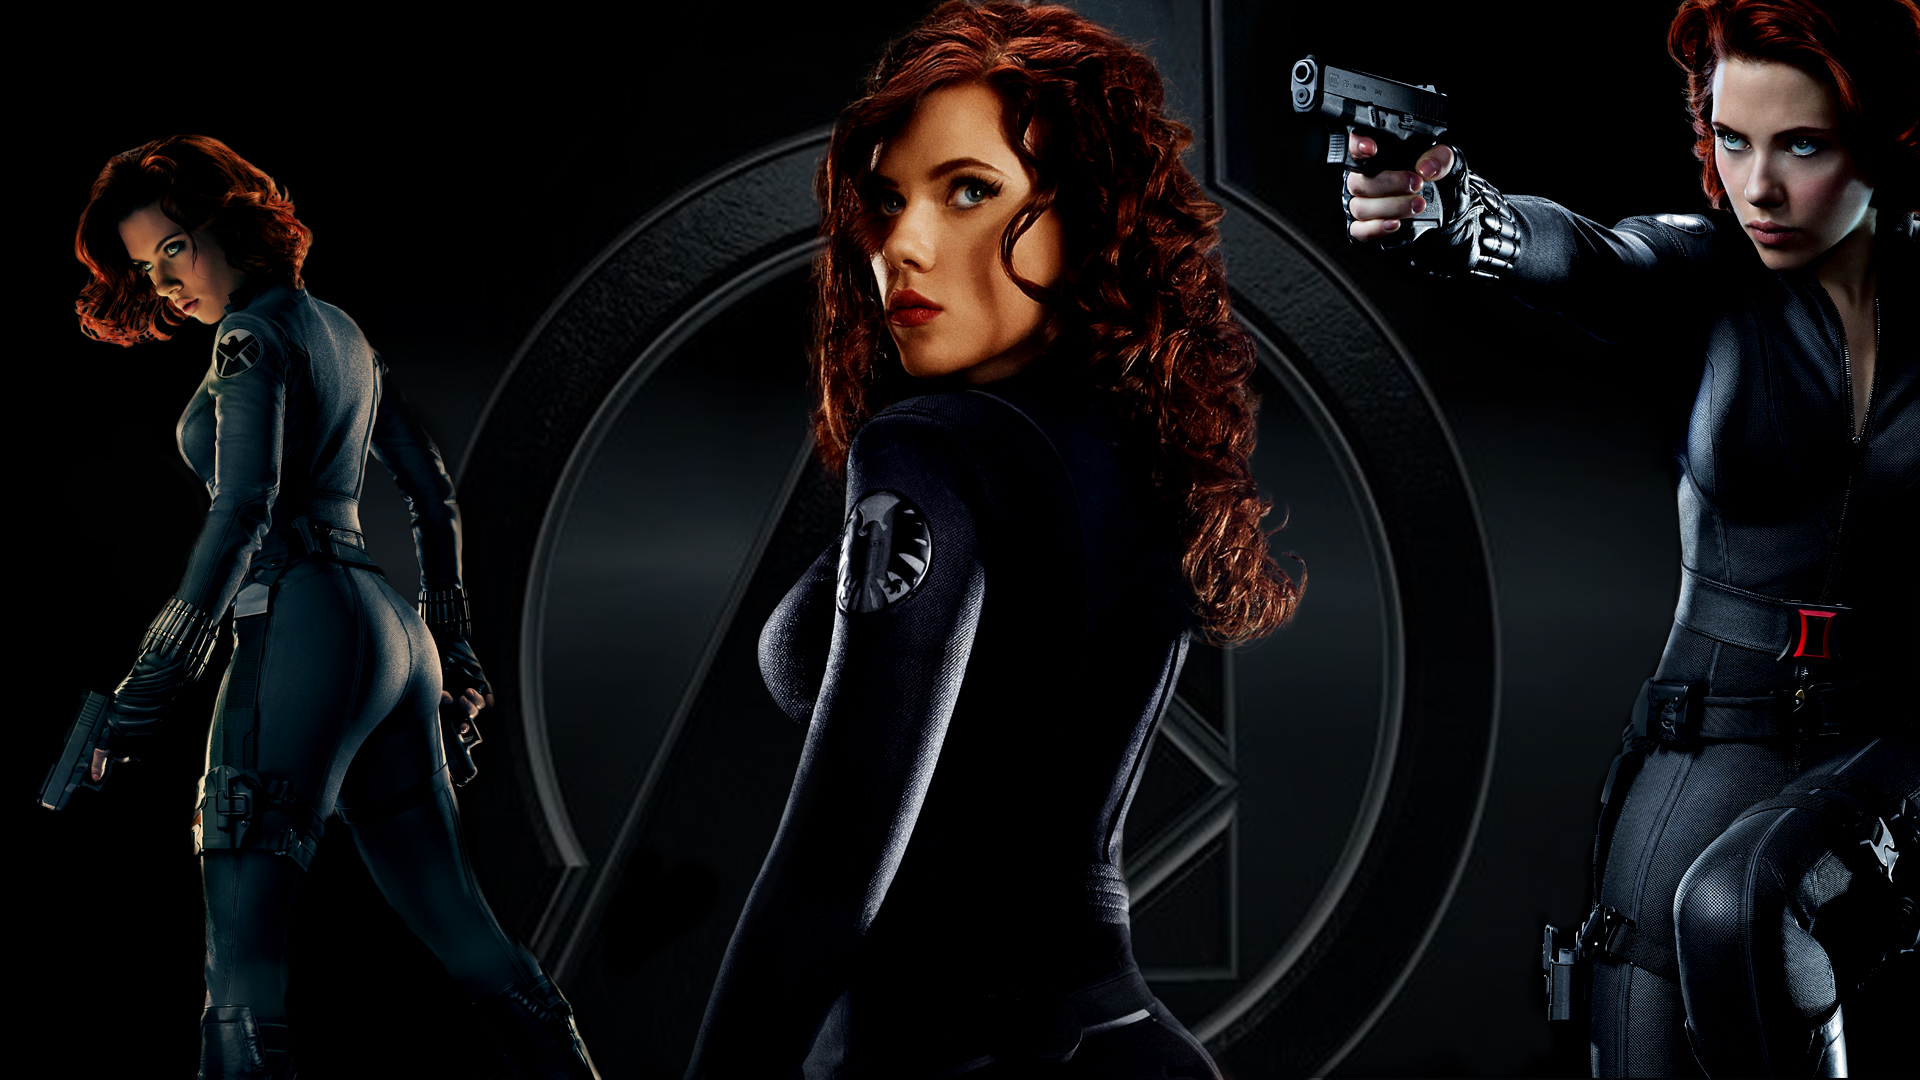 The Avengers: The Avengers Wallpapers, Pictures, Images